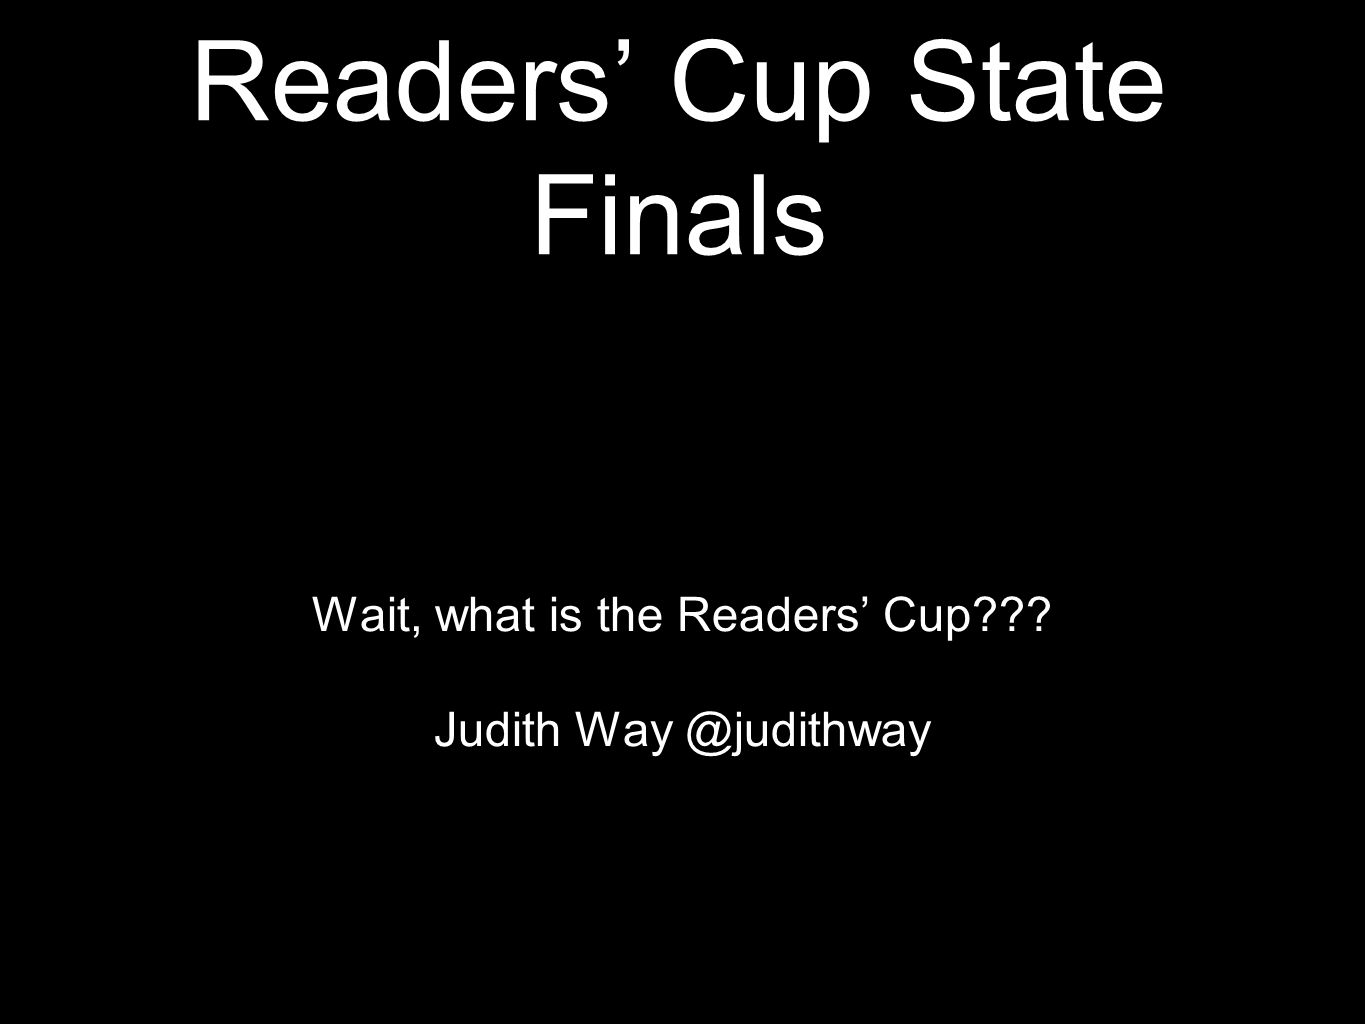 Readers' Cup State Finals Wait, what is the Readers' Cup??? Judith Way @judithway